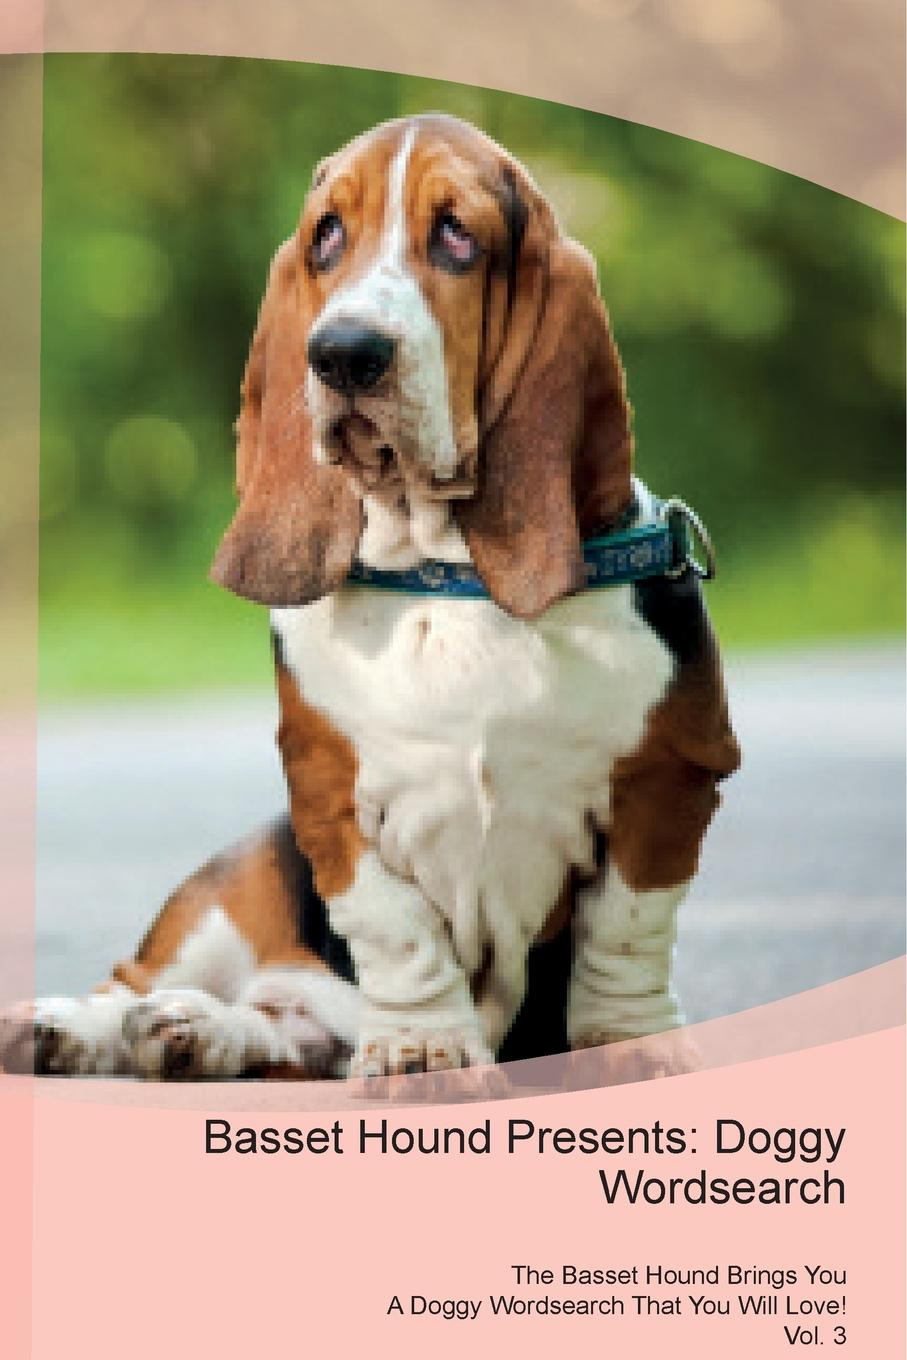 Doggy Puzzles Basset Hound Presents. Wordsearch The Brings You A That Will Love! Vol. 3